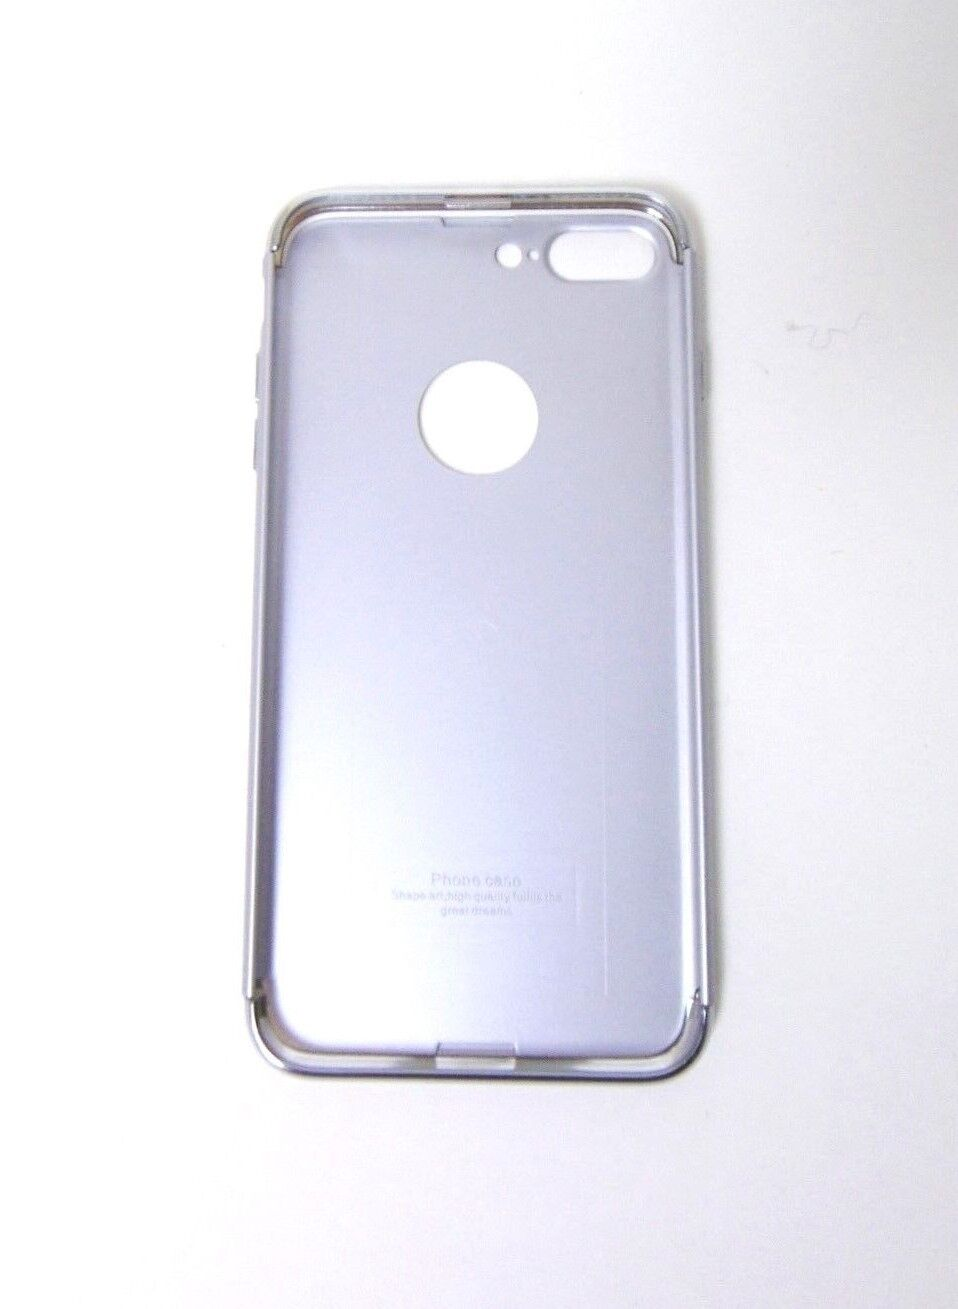 Ranvoo 0.3cm Thickness Silver IPhone 6s Plus Protective Hard Phone Case - $11.99